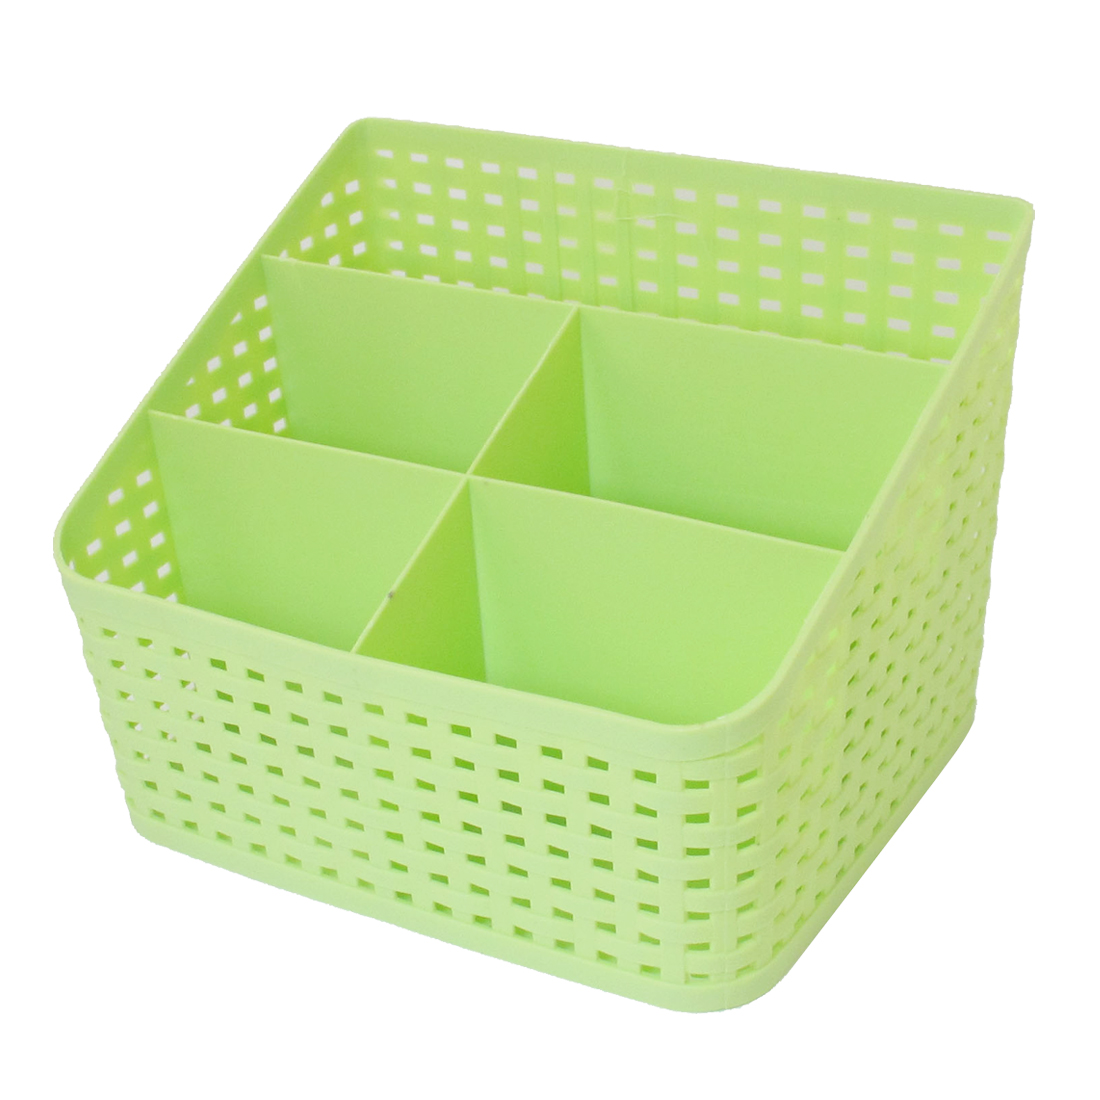 Desktop Sundries Classification 5 Slots Storage Drawer Divider Box Green